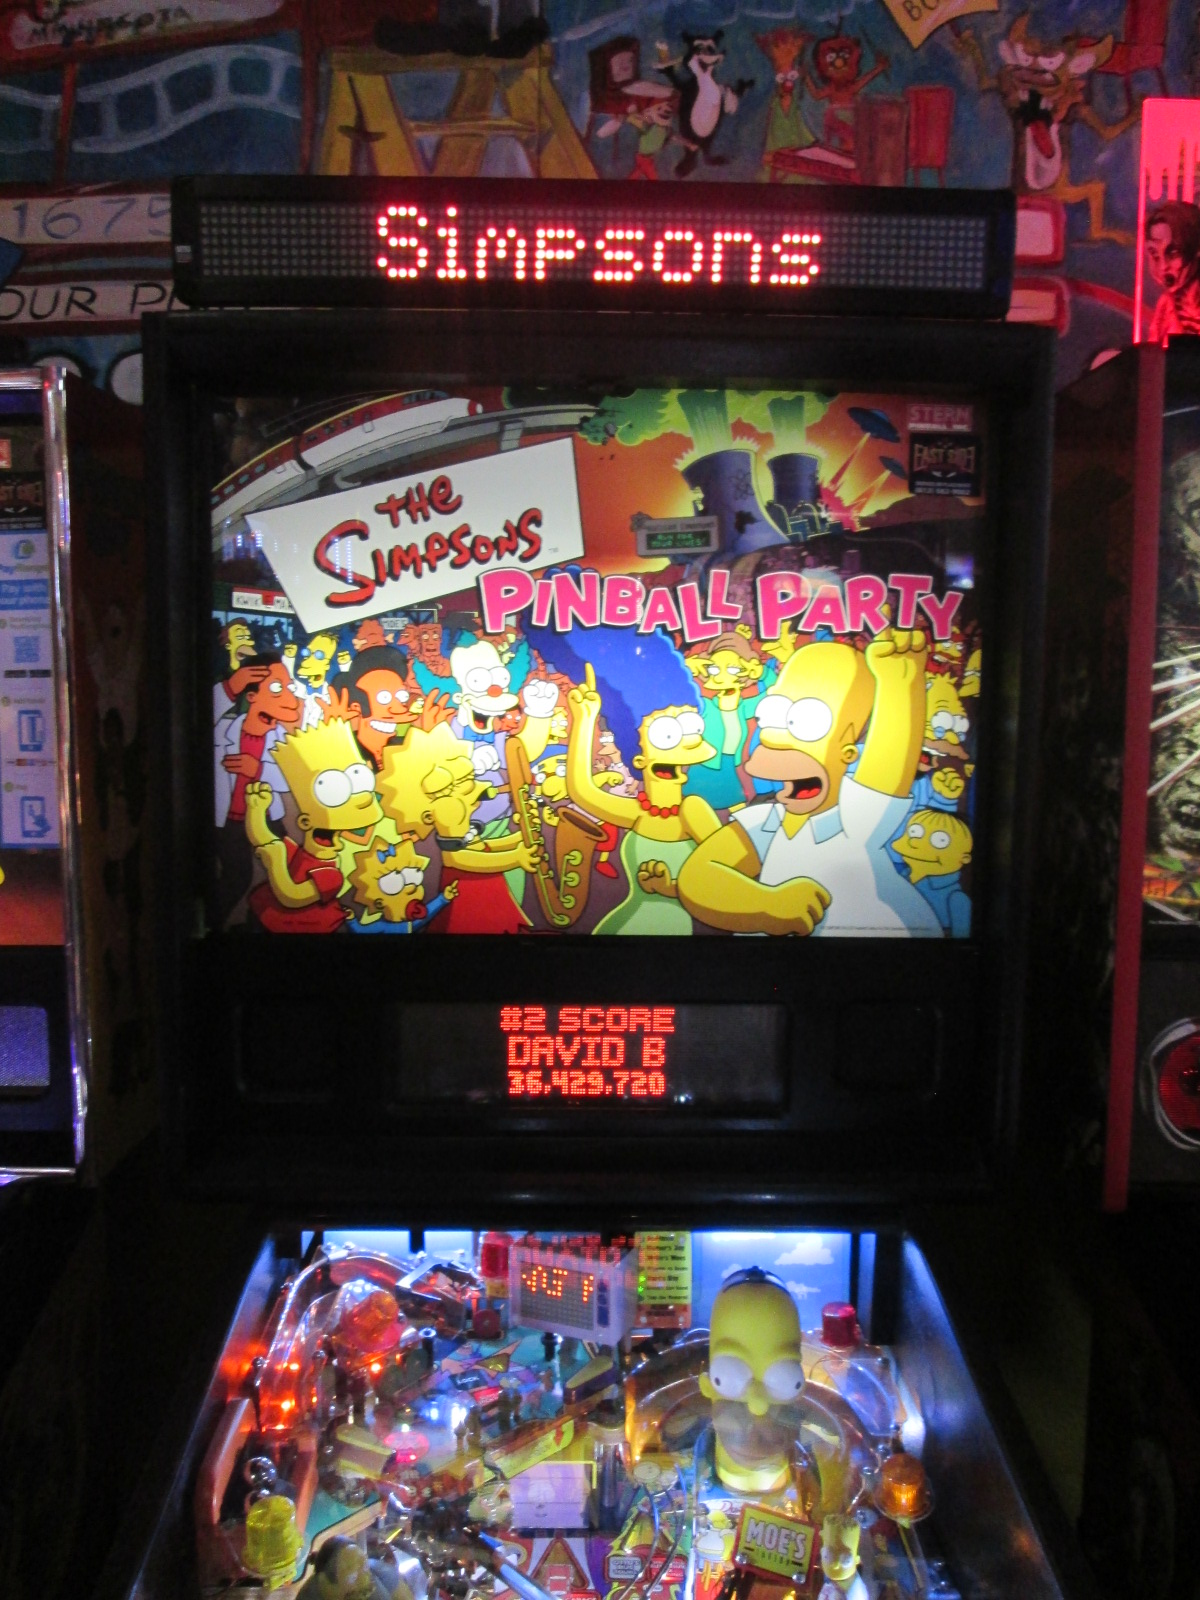 ed1475: The Simpsons Pinball Party (Pinball: 3 Balls) 6,431,110 points on 2016-09-07 00:50:37